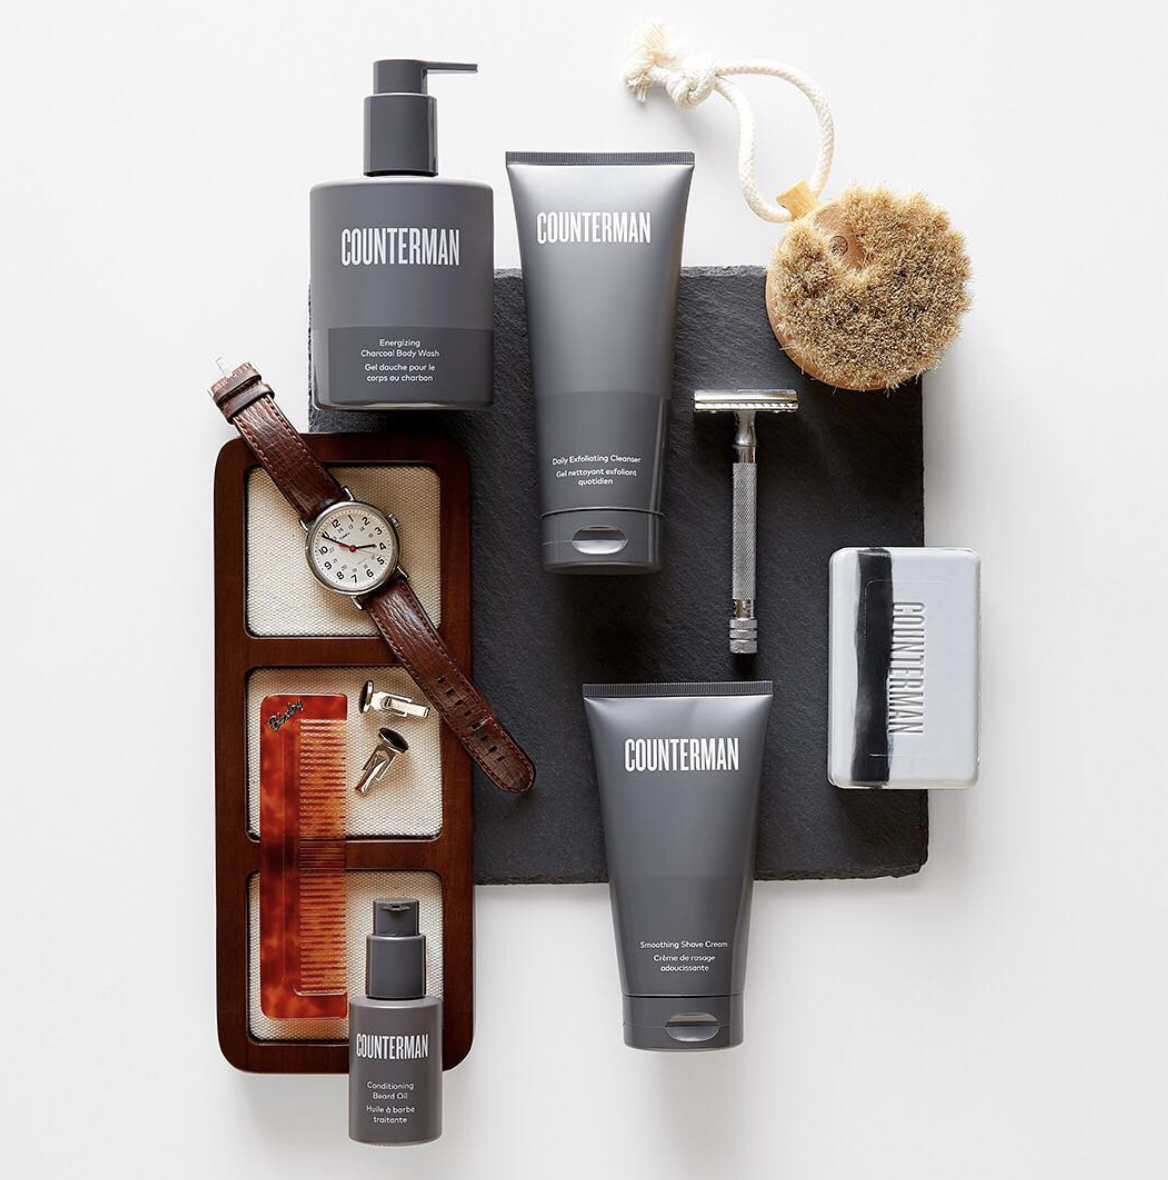 Beautycounter launched Counterman, a clean beauty brand